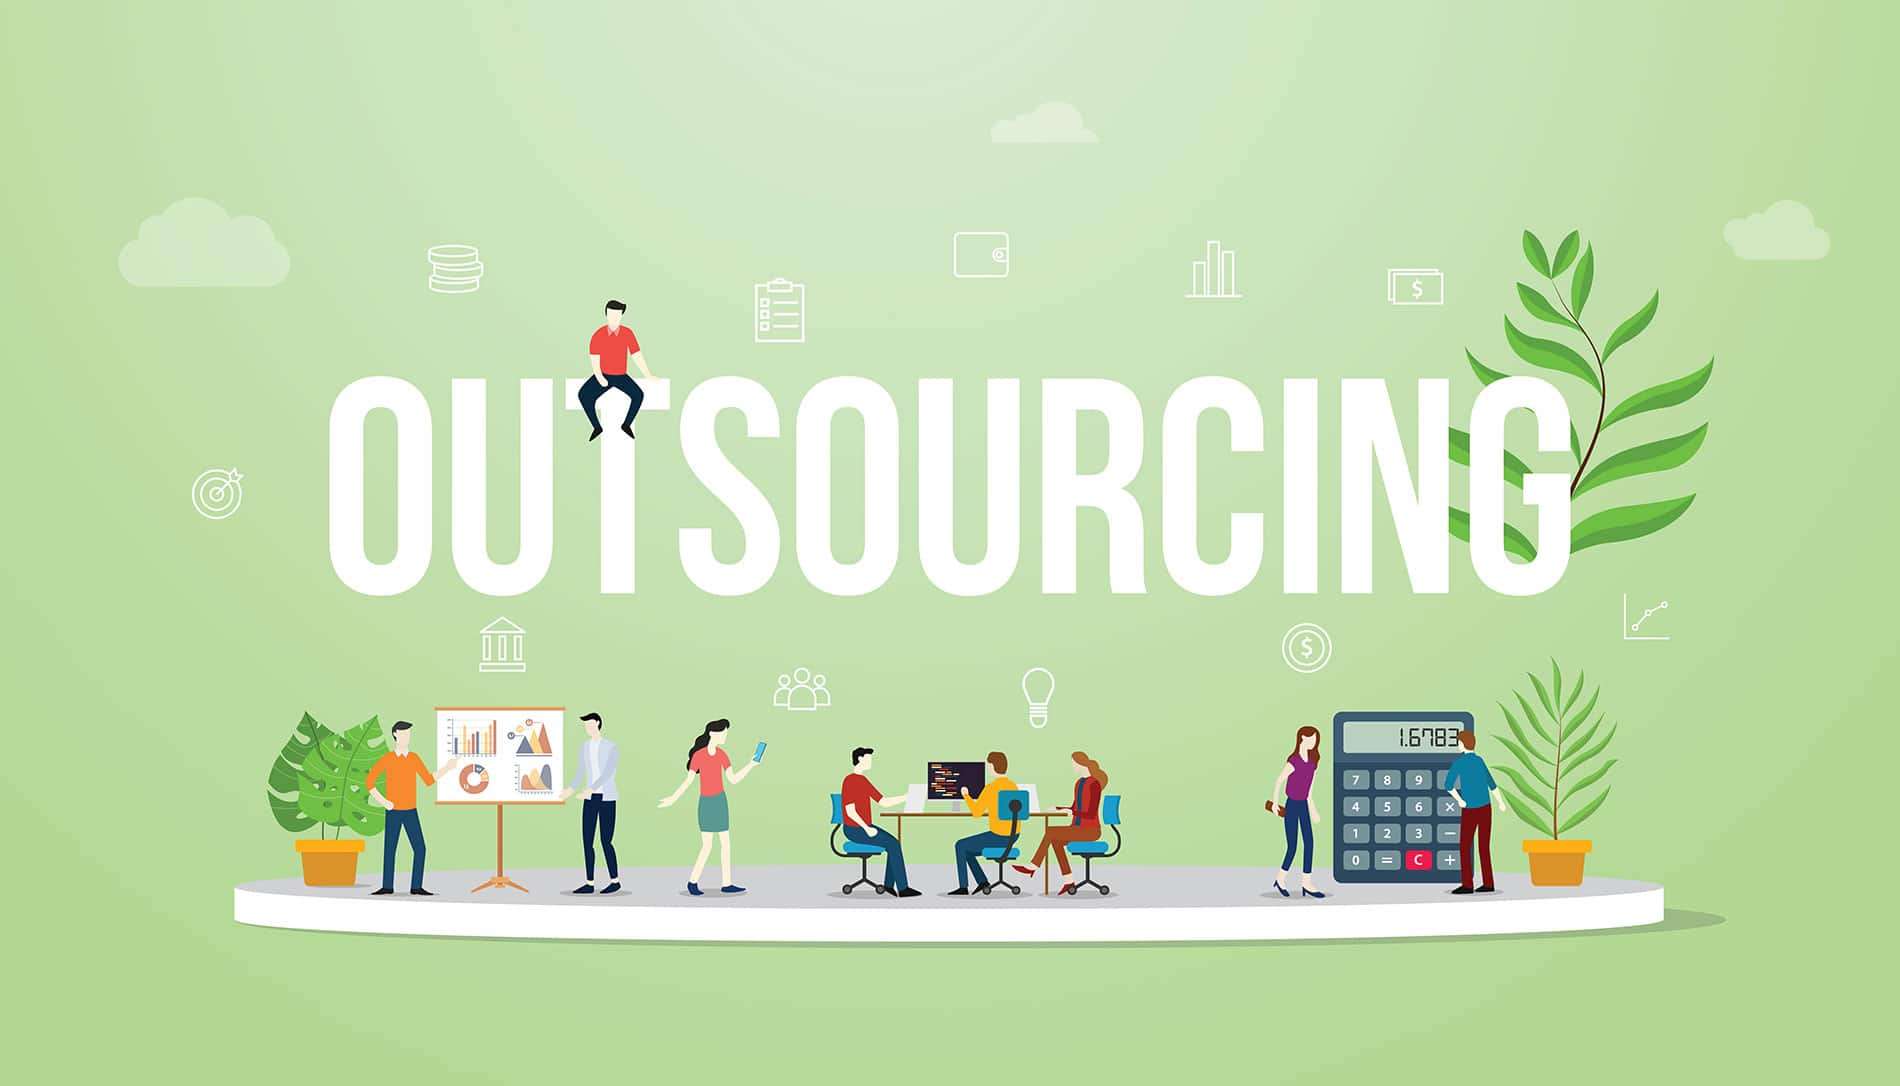 Outsourcing business concept